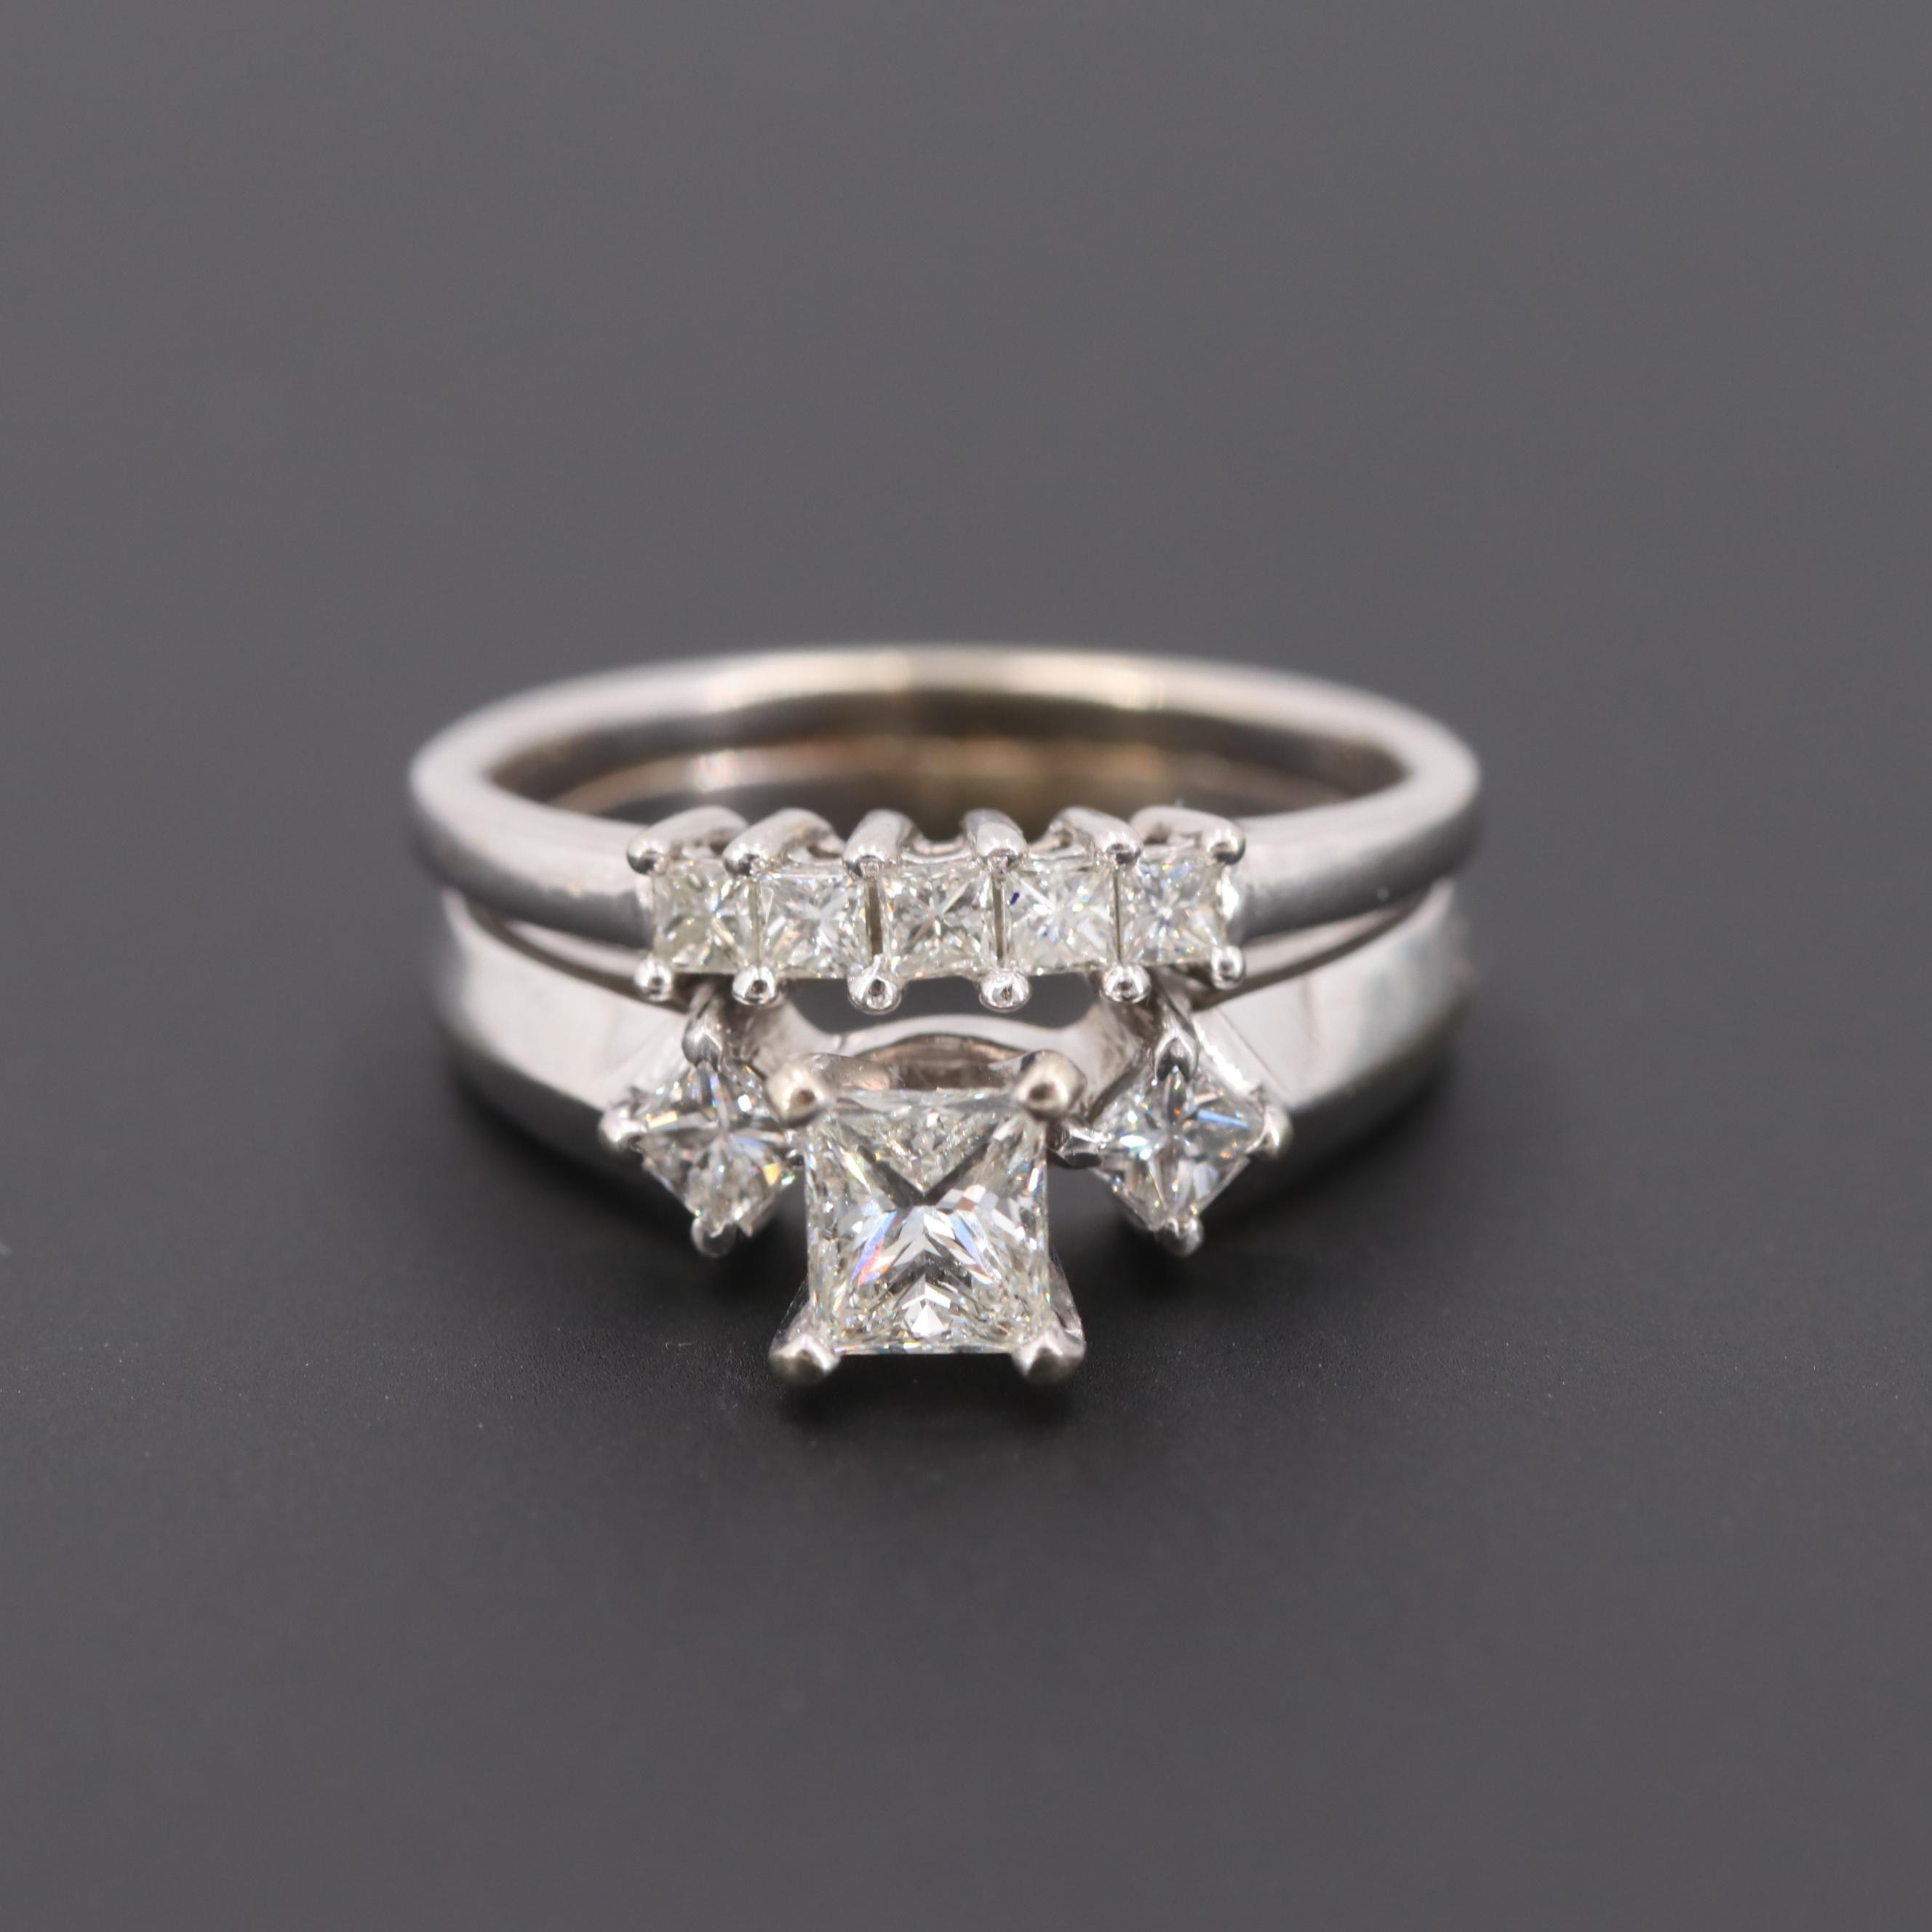 14K White Gold 1.05 CTW Diamond Ring